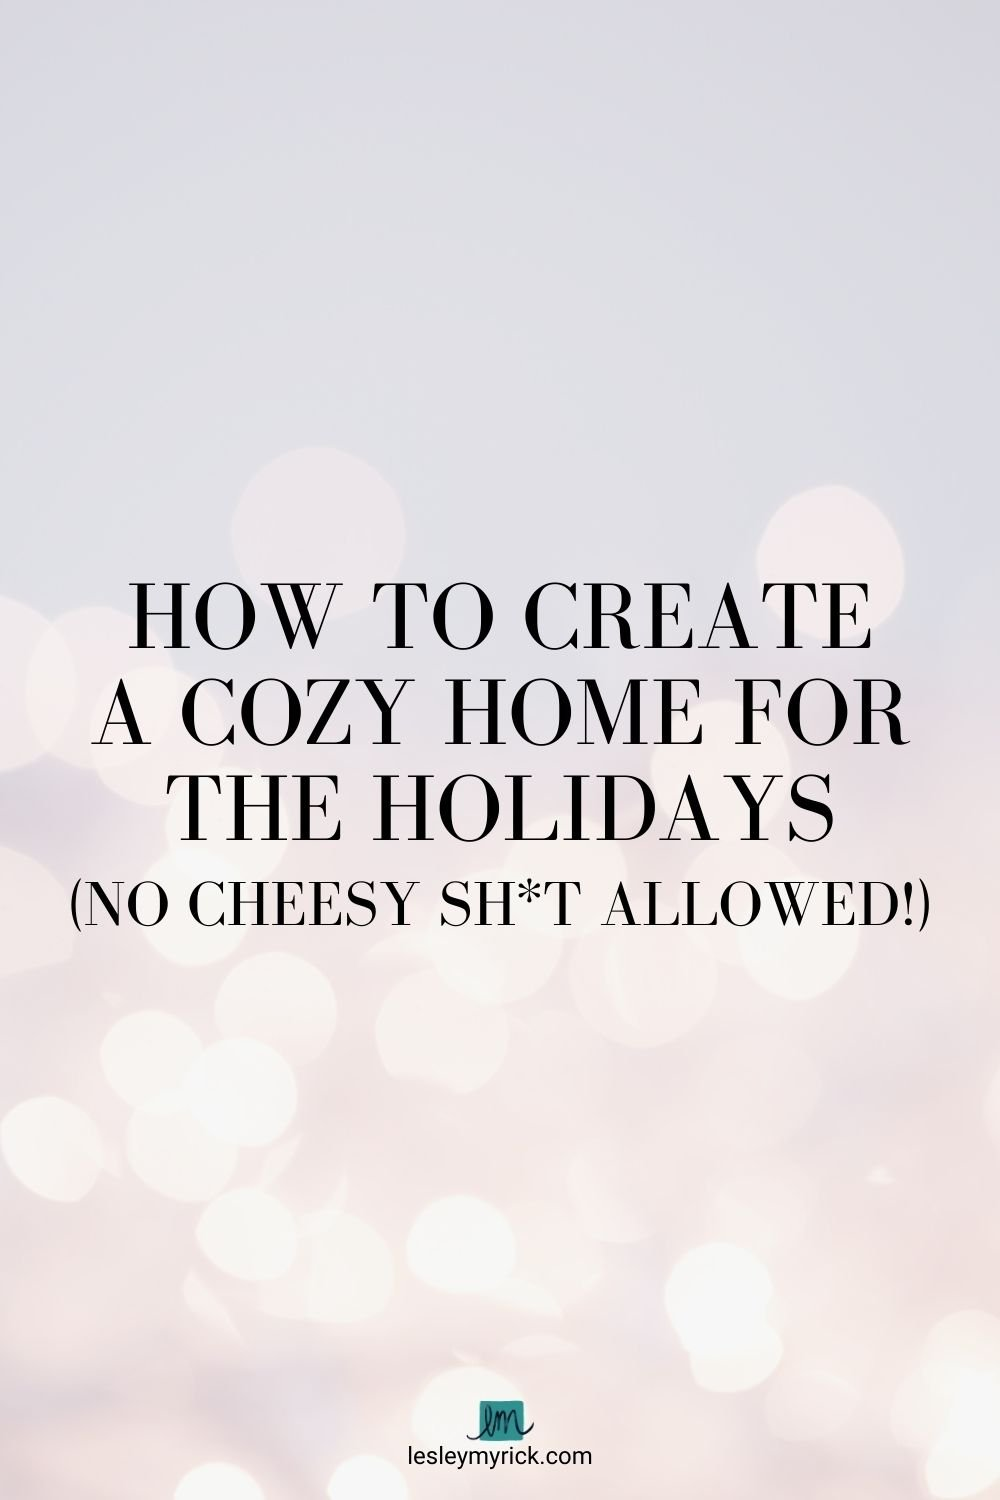 How to create a cozy home for the holidays - no cheesy sh*t allowed! Holiday decorating tips from interior designer Lesley Myrick.